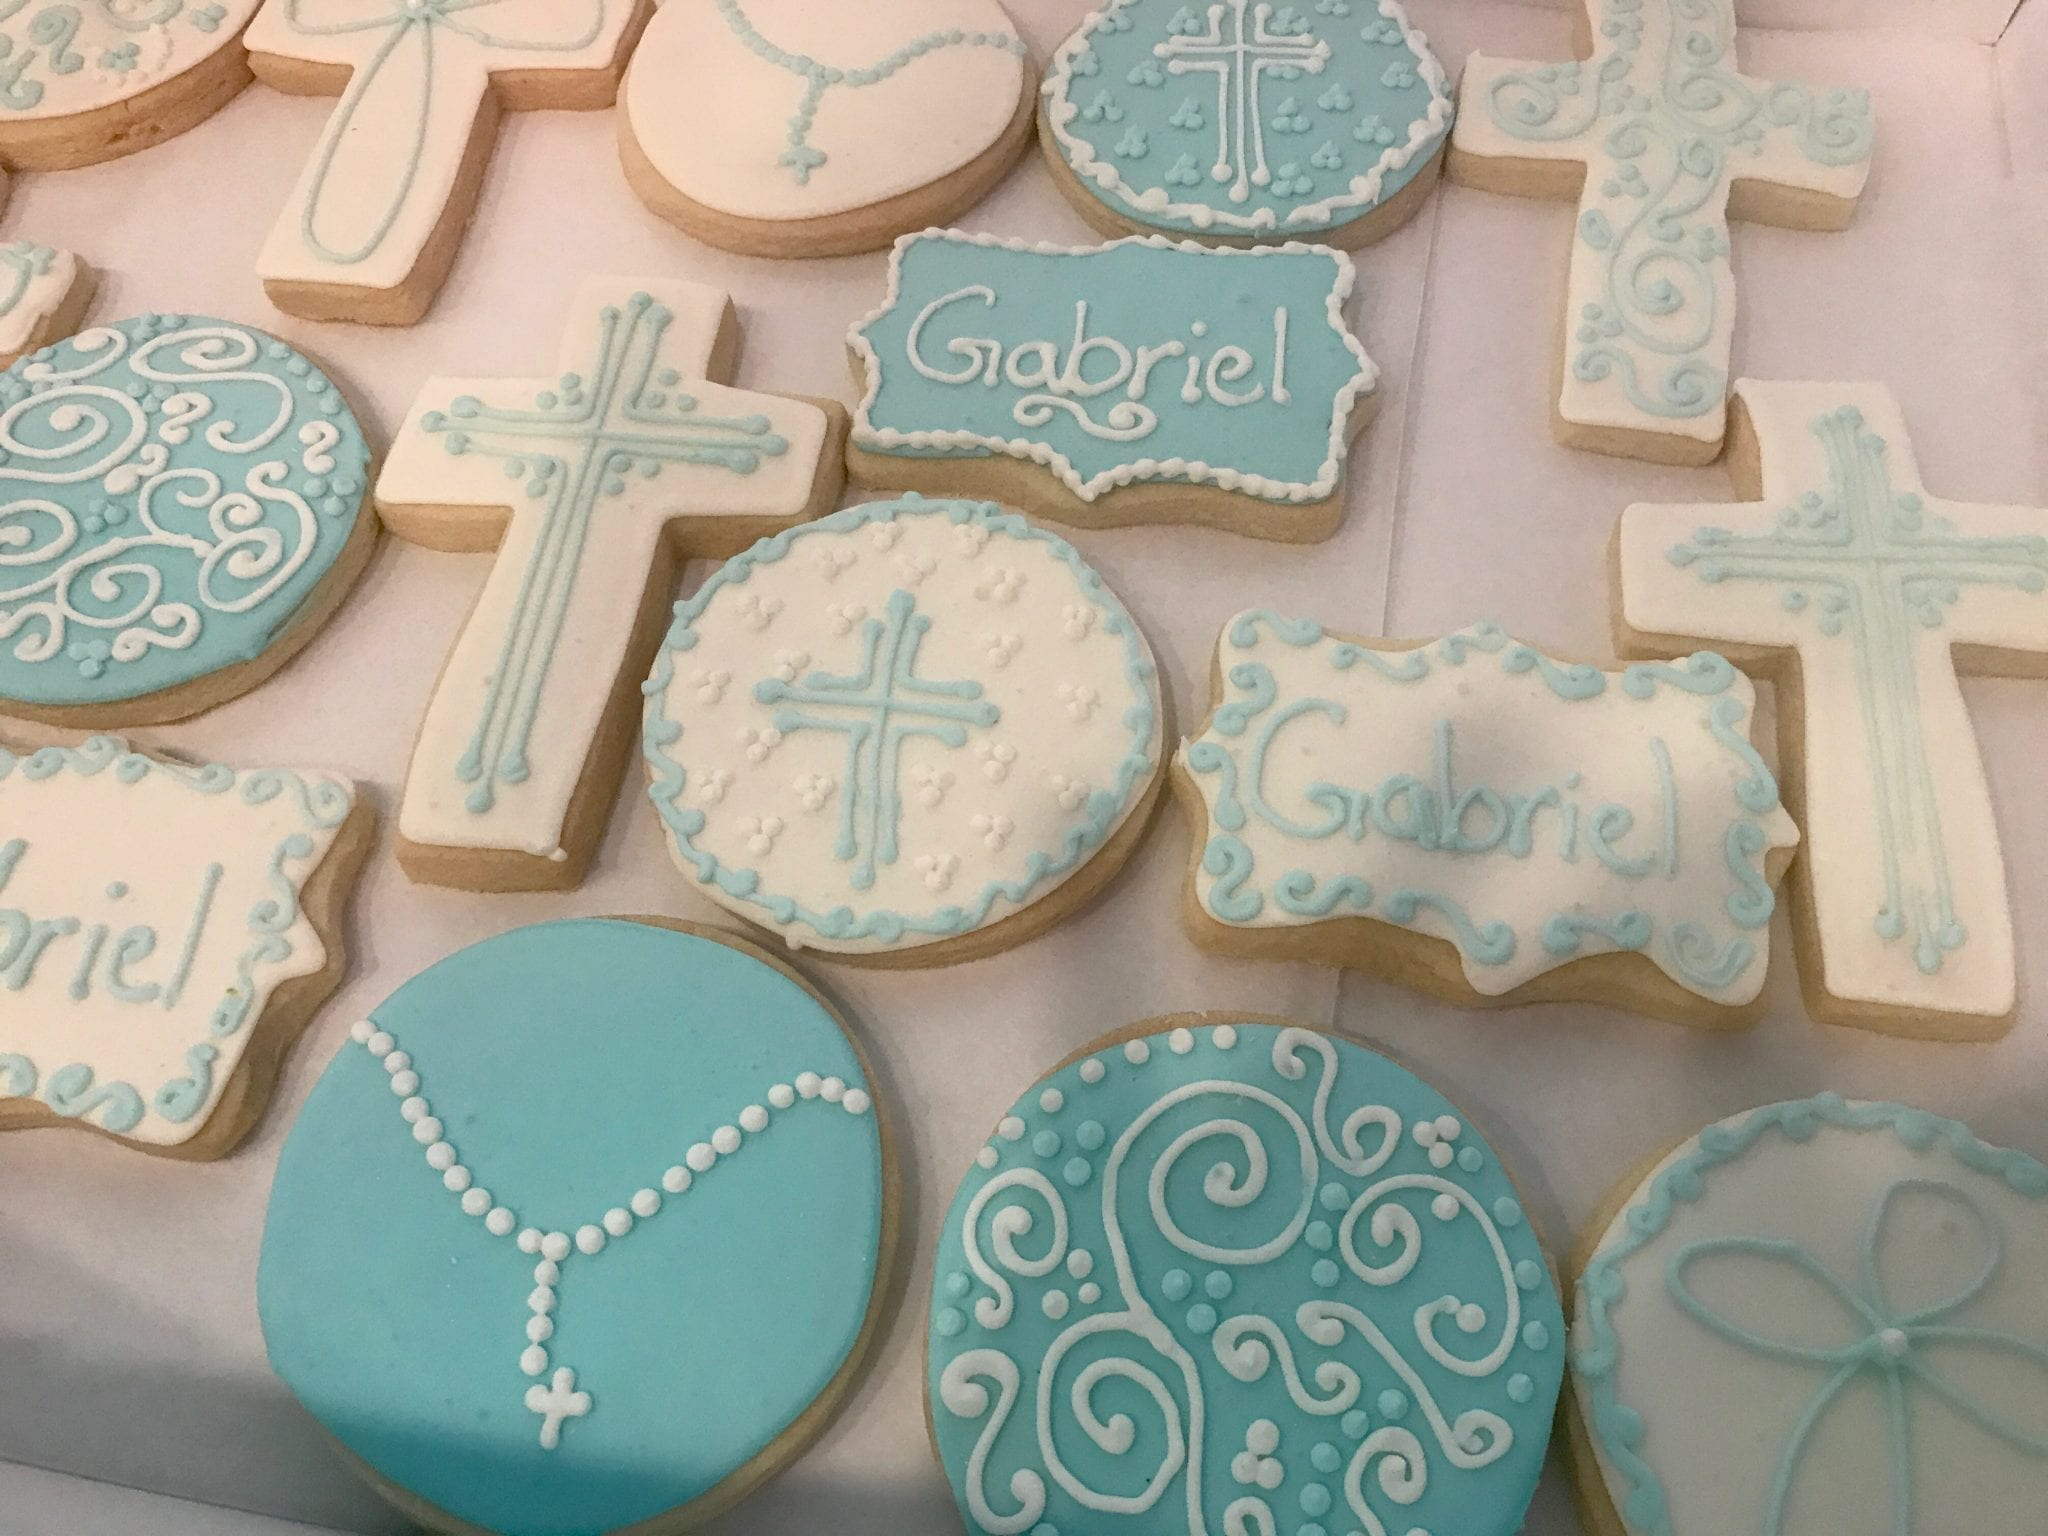 Baptism or First Communion Cookies with Rosary Beads and Crosses | 3 Sweet Girls Cakery